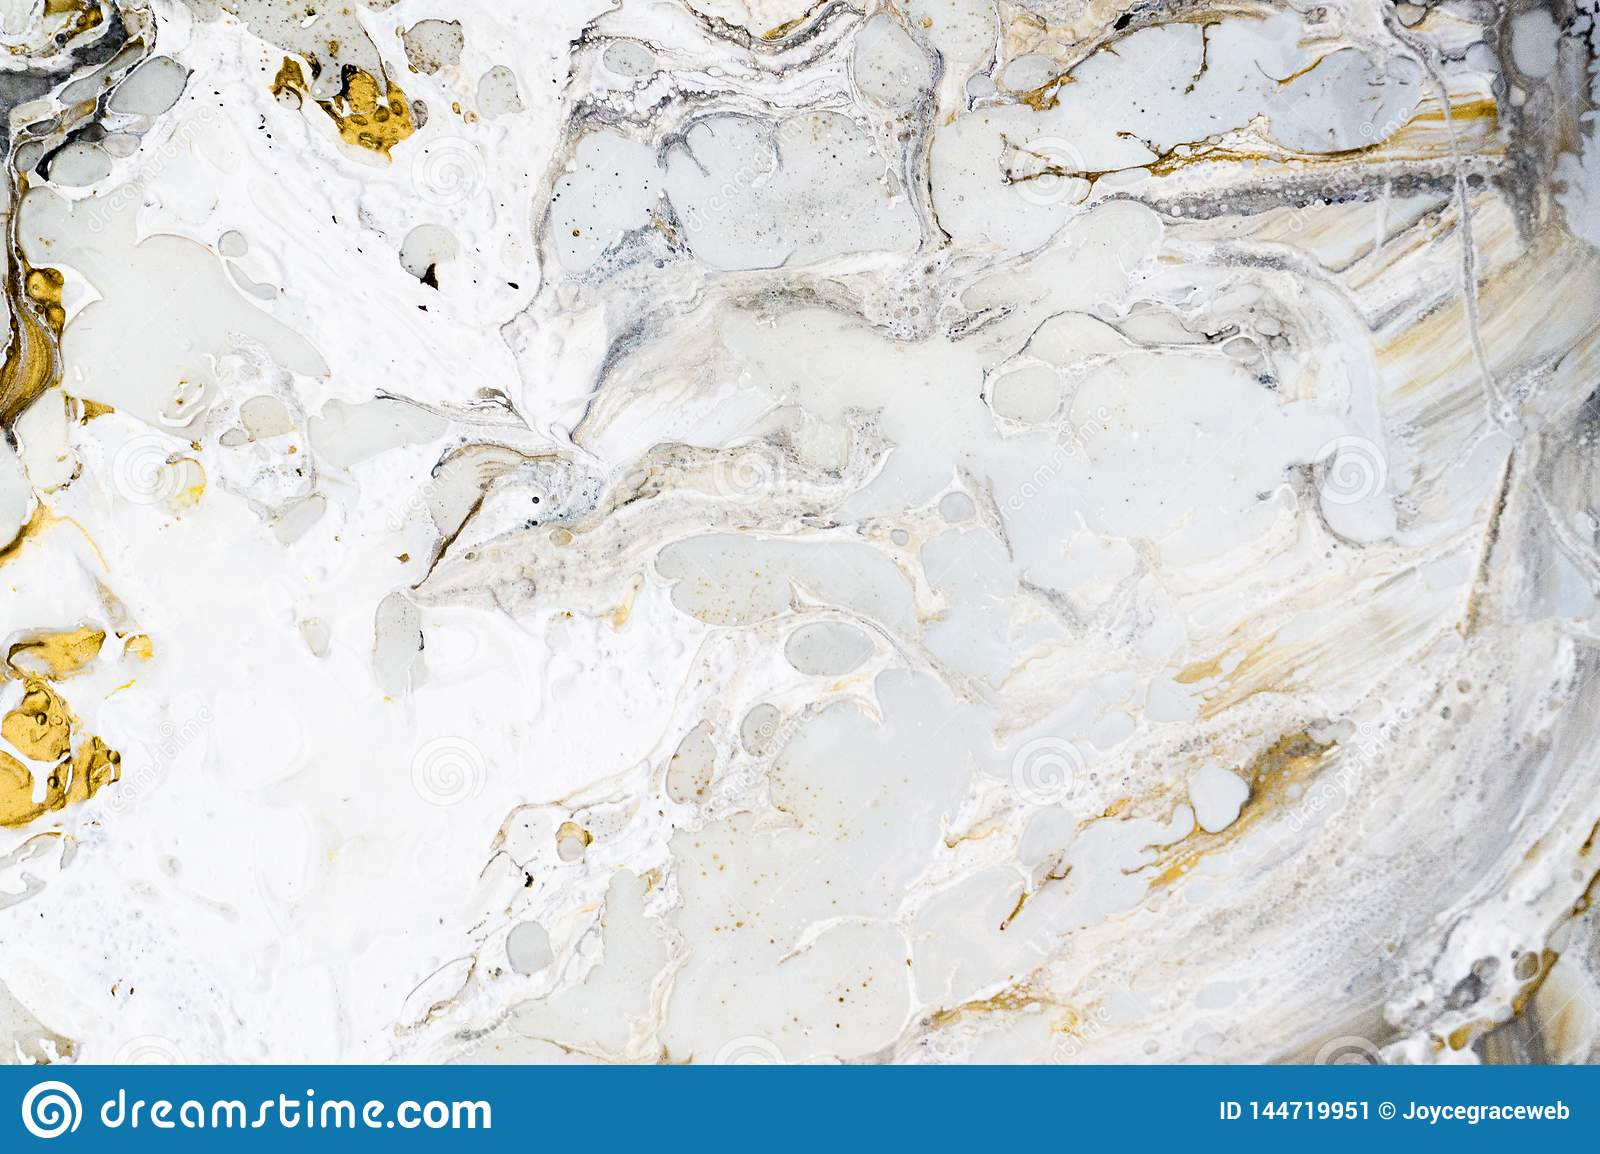 Marble background texture with gold, black, grey and white colors, using acrylic pouring medium art technique. Useful as a